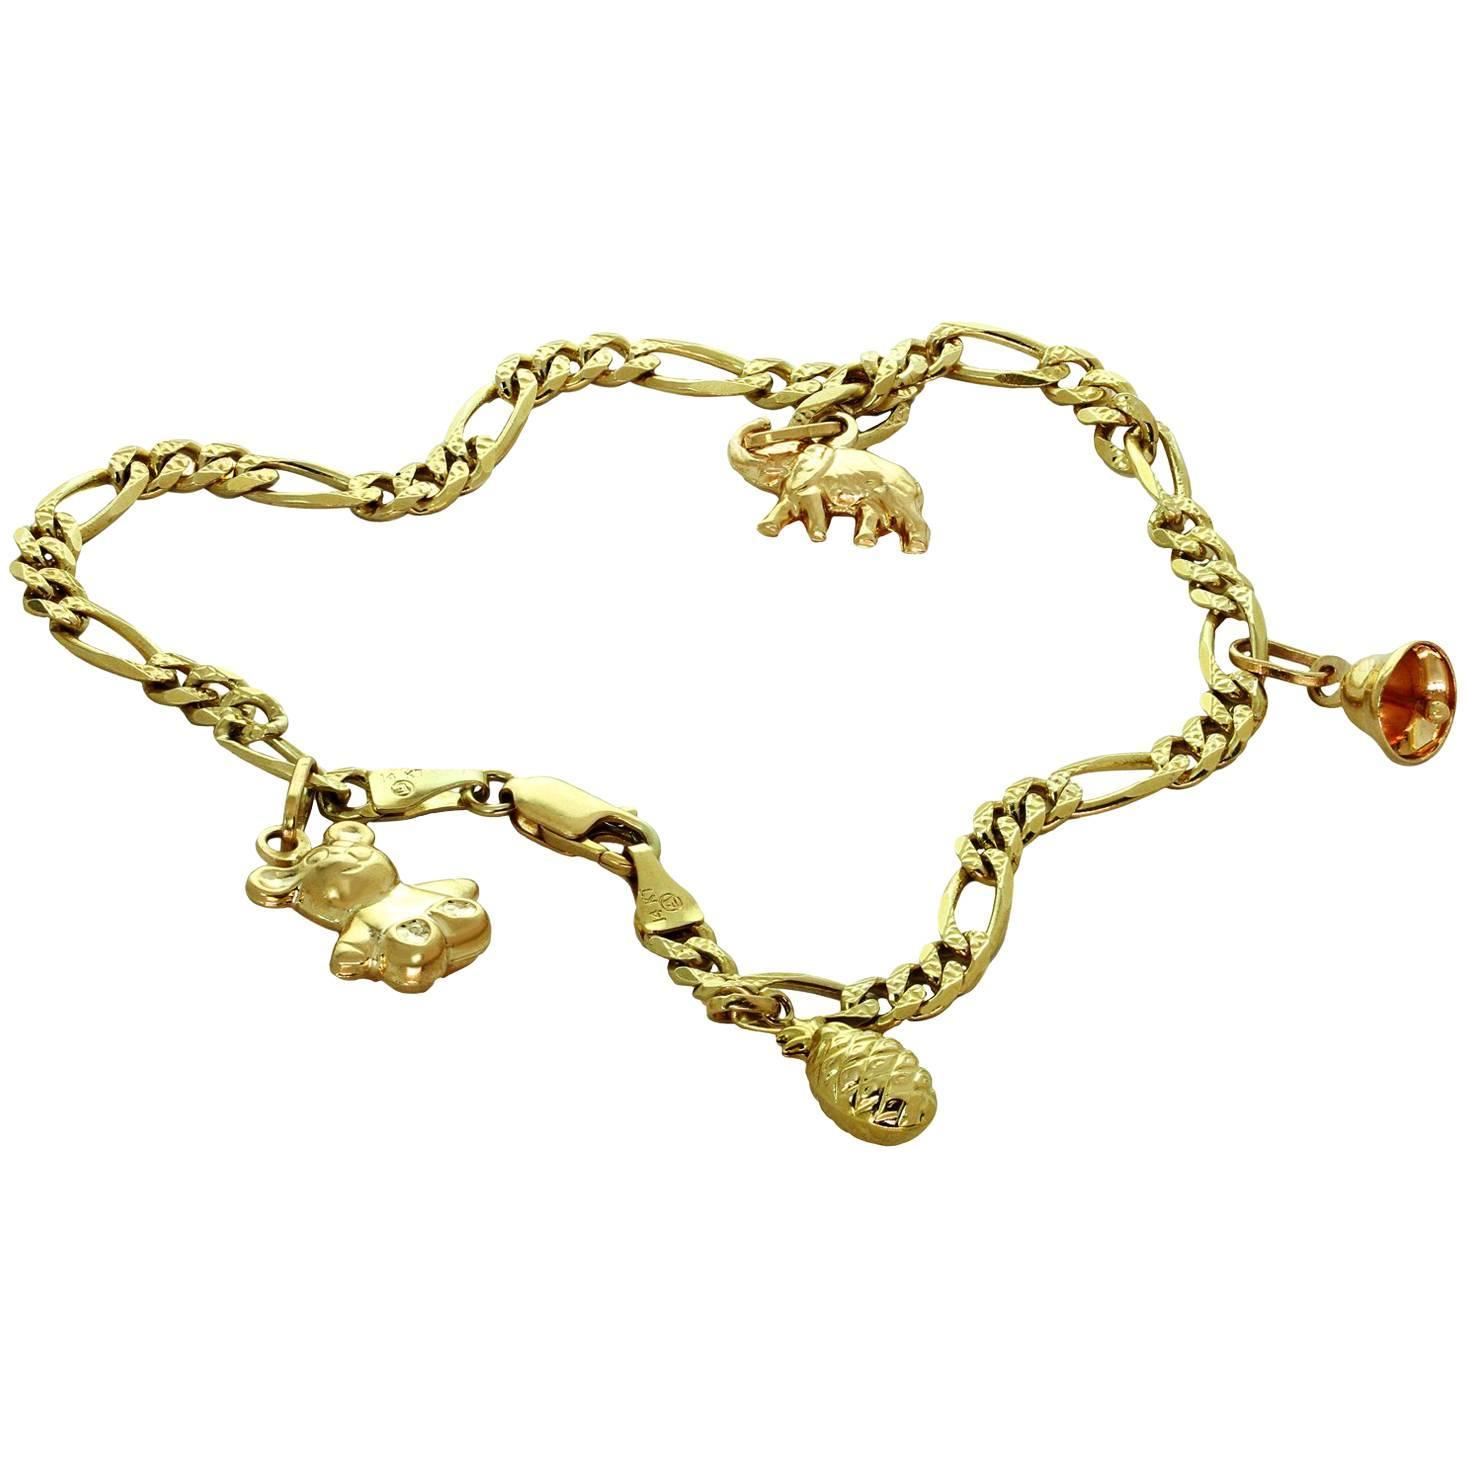 gold anklets anklet quick karat shopping ksvhs beautiful jewellery ace designs